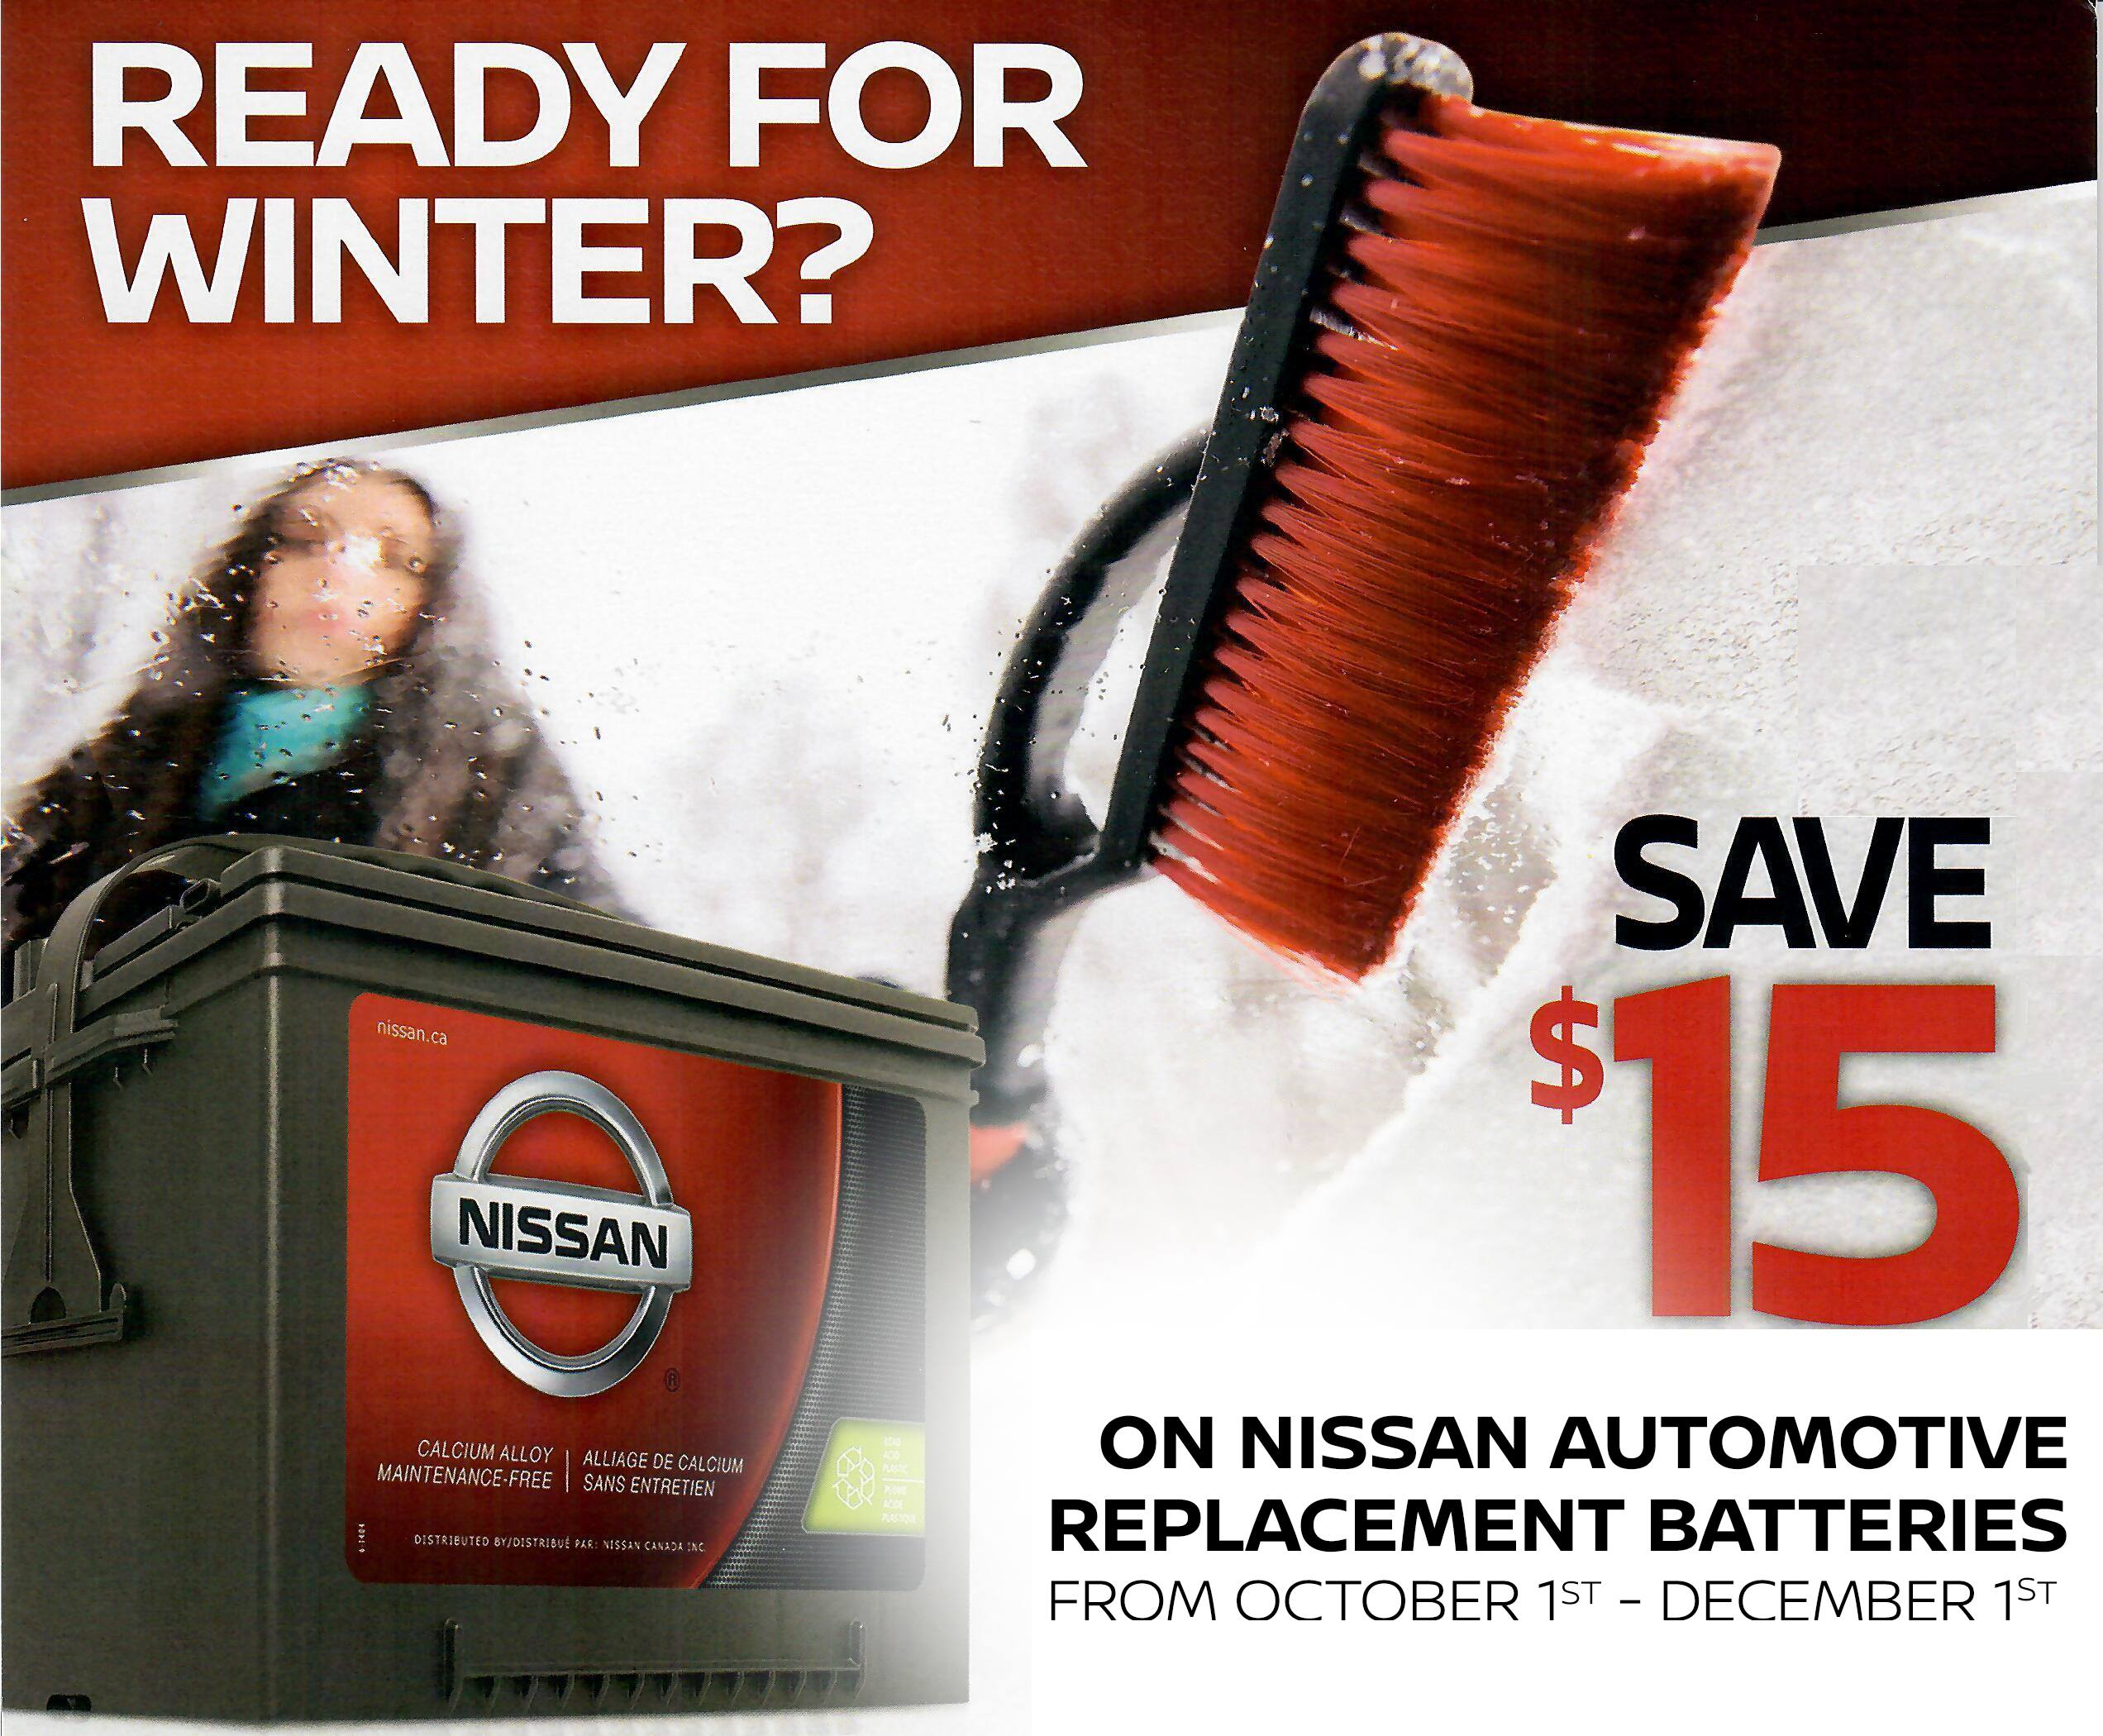 $15 Mail-In-Rebate On Nissan Replacement Batteries